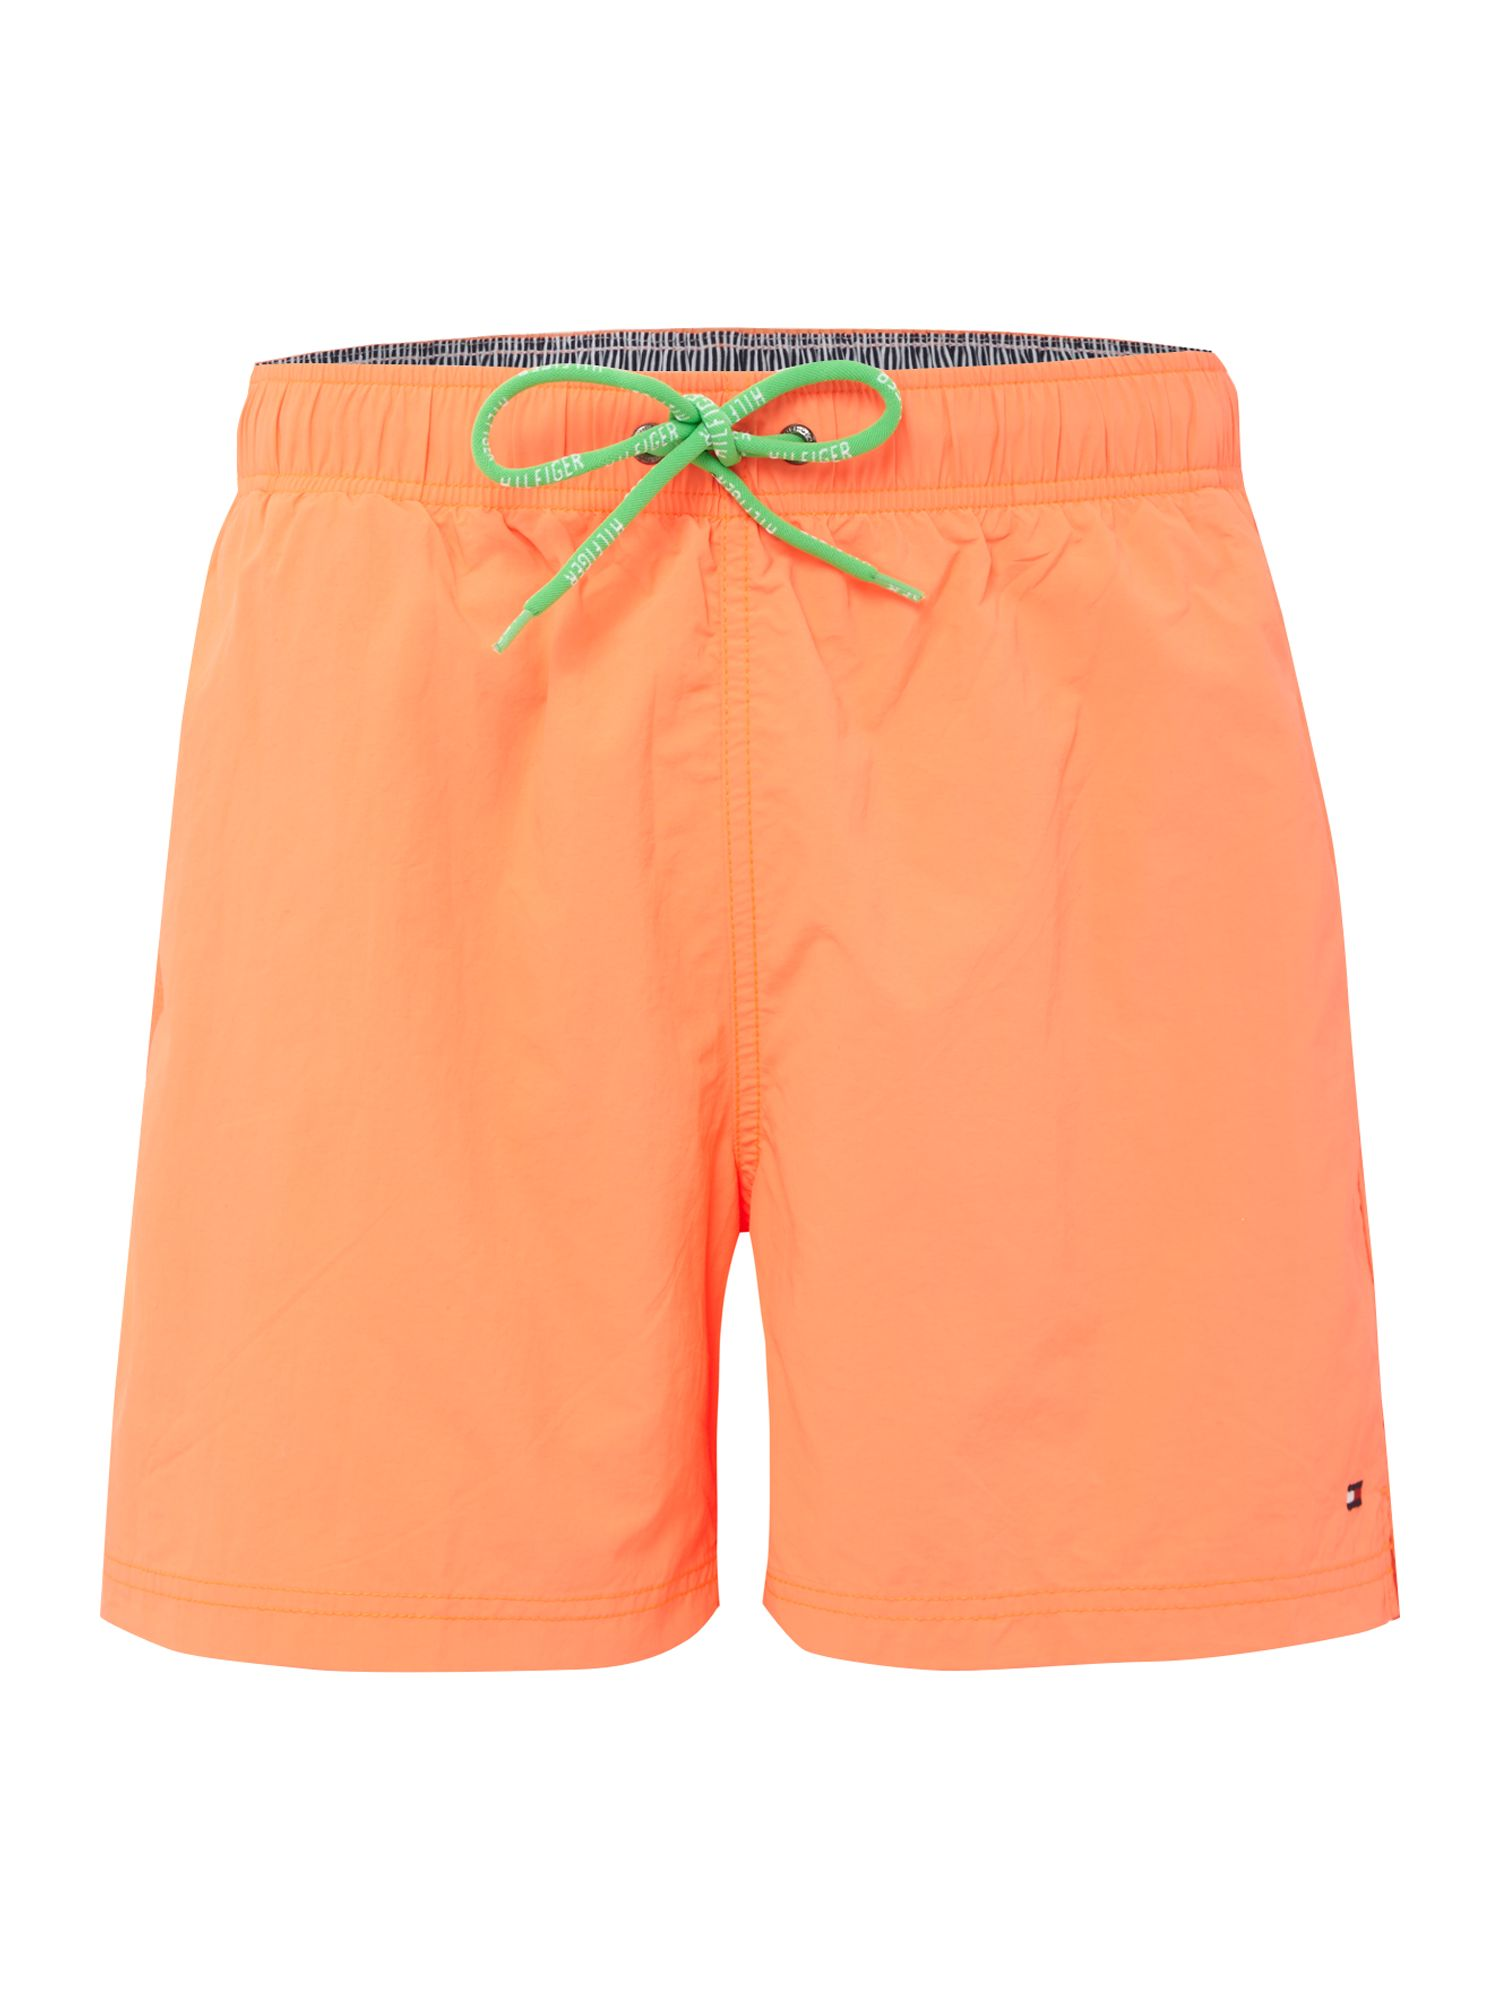 Men's Tommy Hilfiger Swim Shorts, Orange